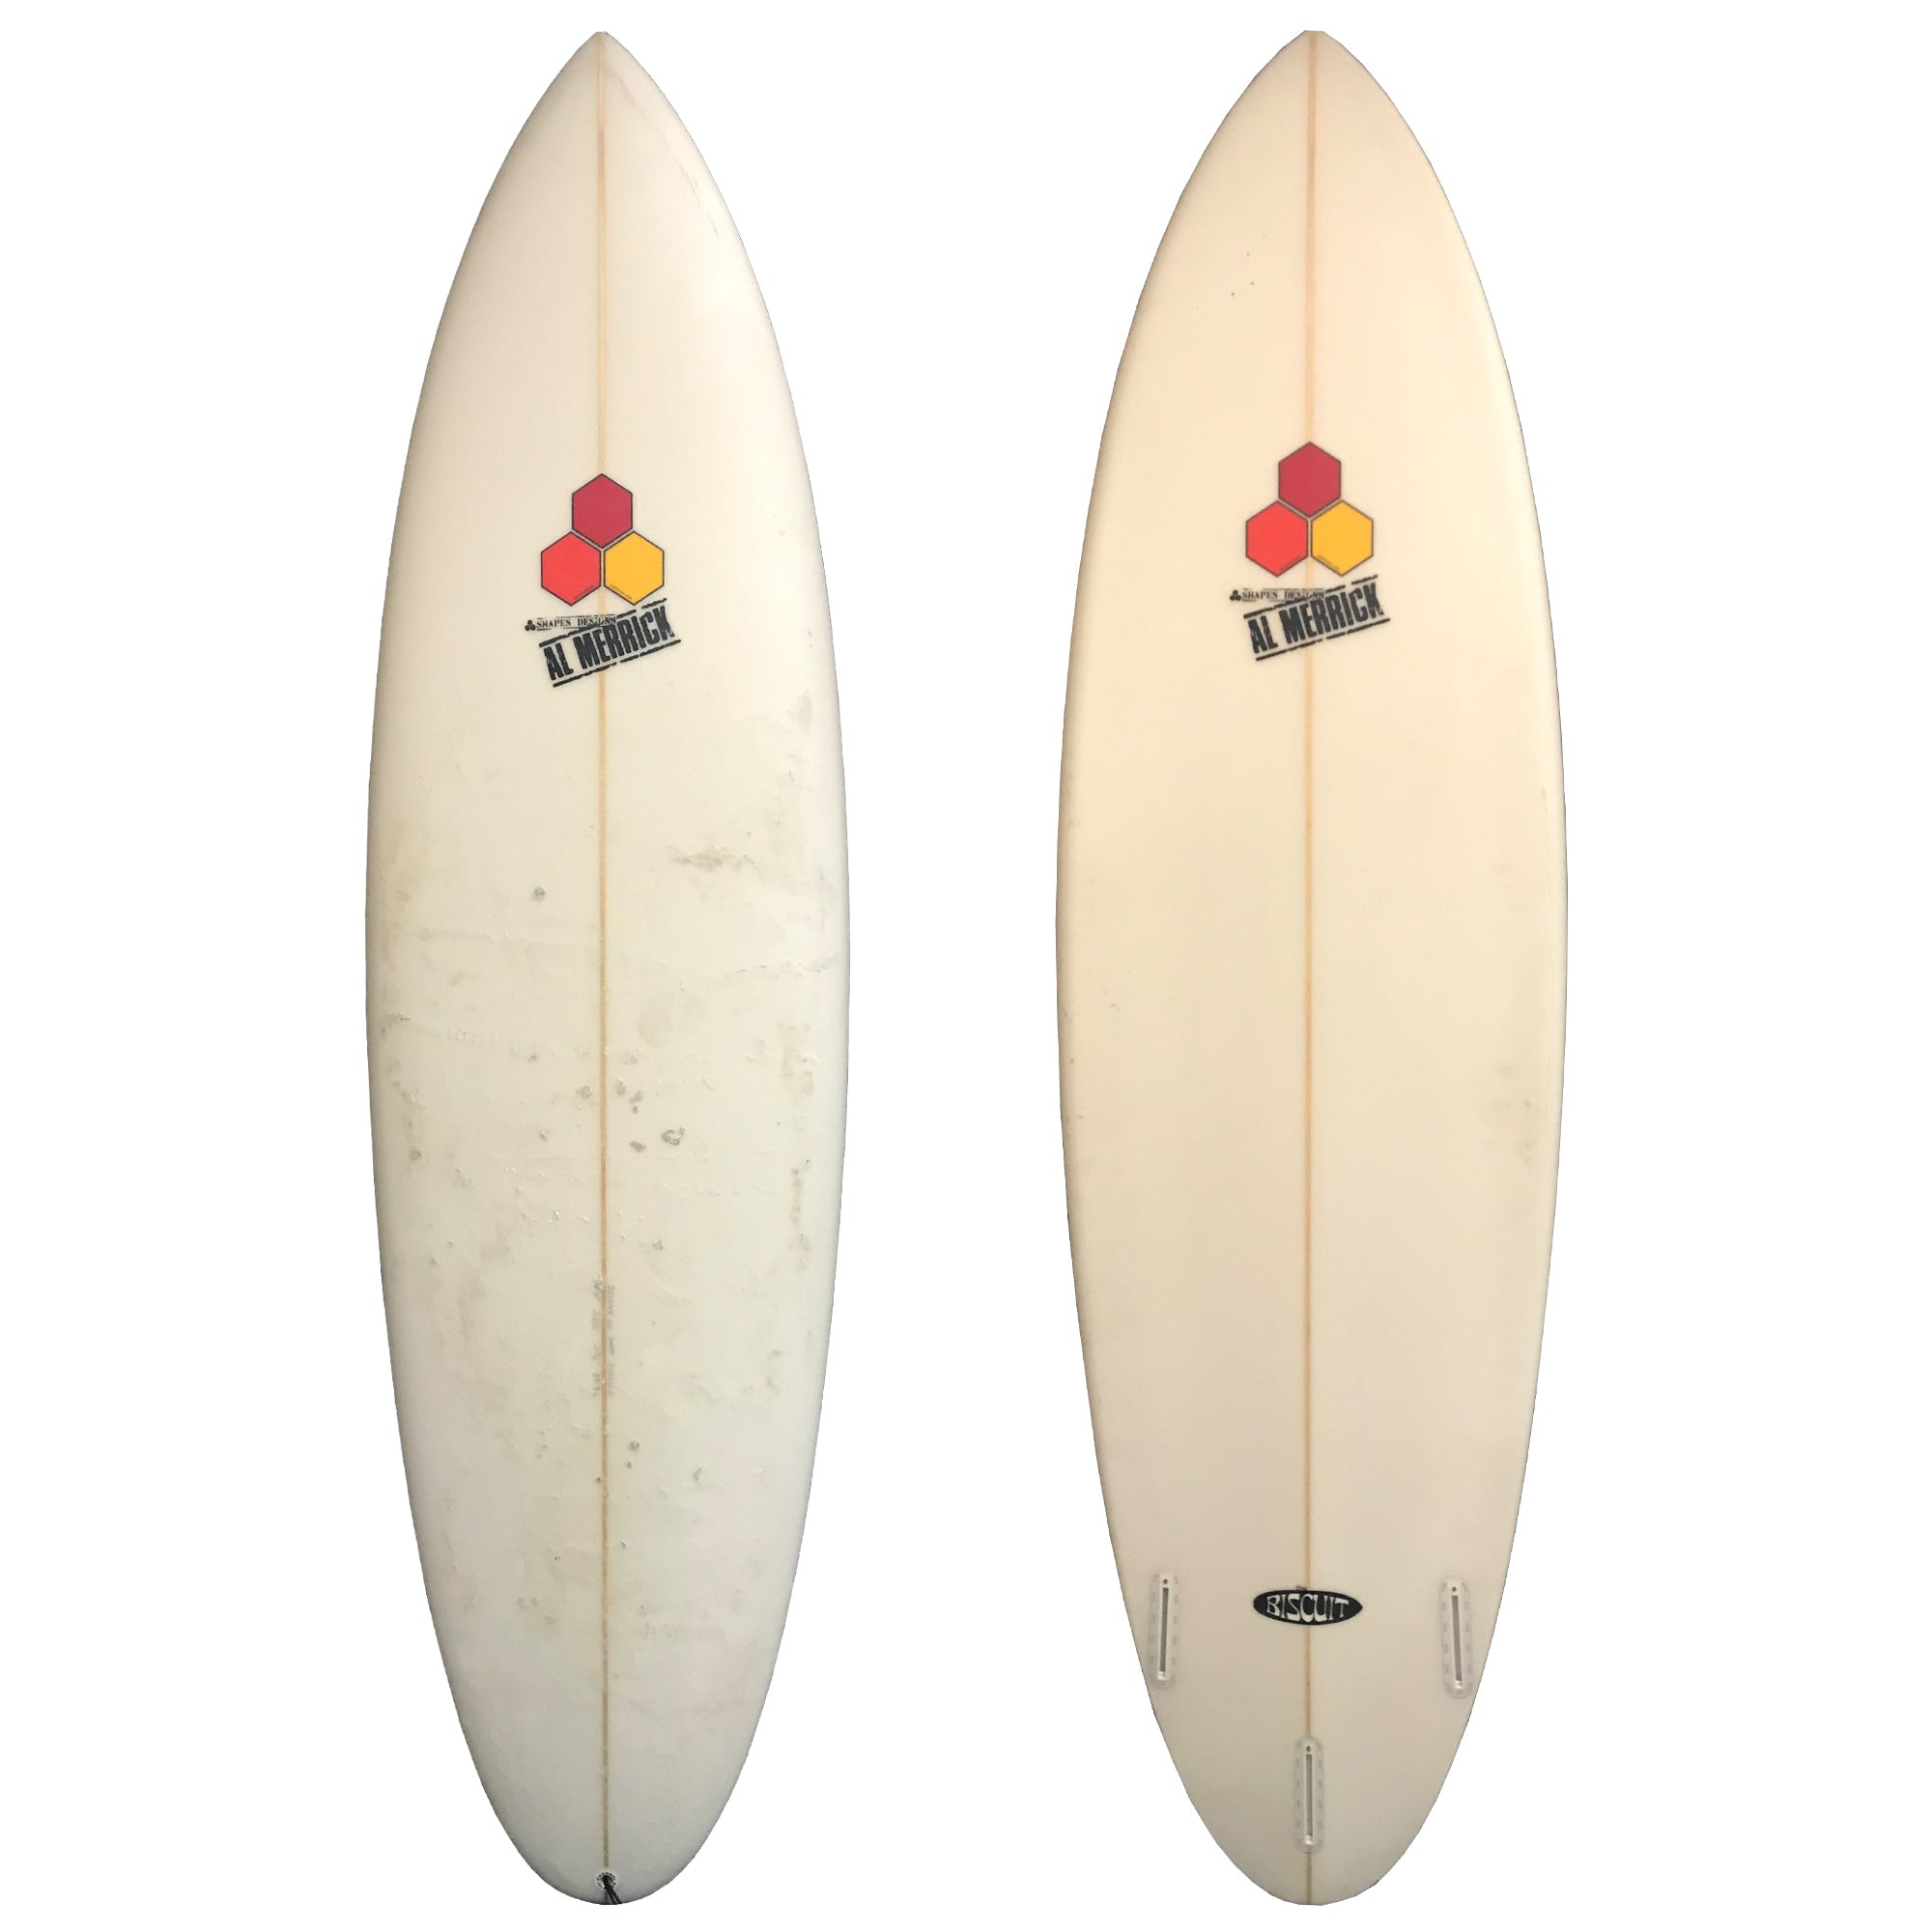 Channel Islands Biscuit 7' Used Surfboard